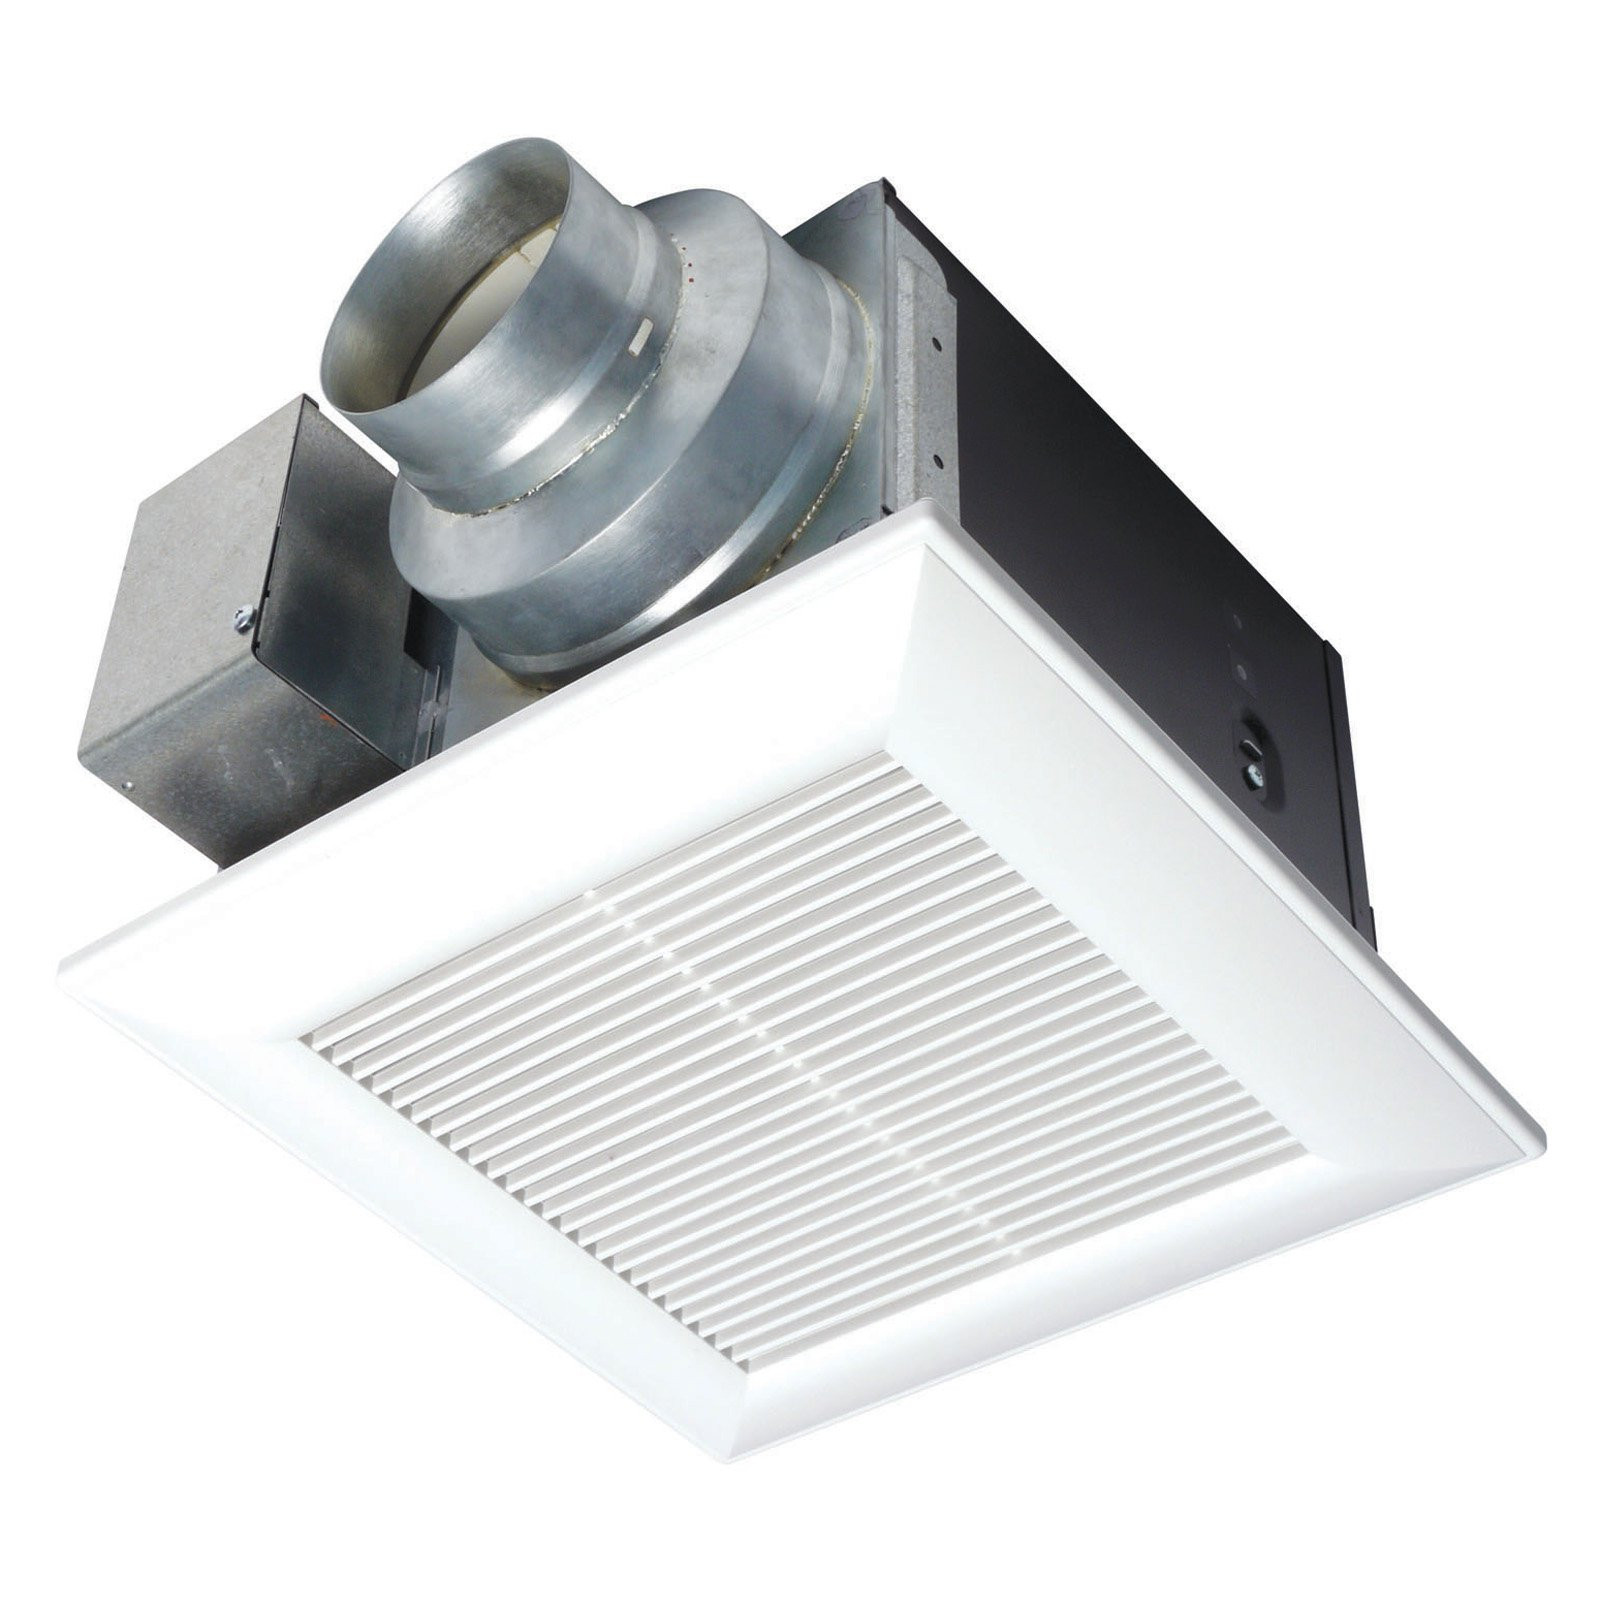 Best ideas about Panasonic Bathroom Fan . Save or Pin Panasonic WhisperCeiling FV 05VQ5 Ceiling Mount Bathroom Now.